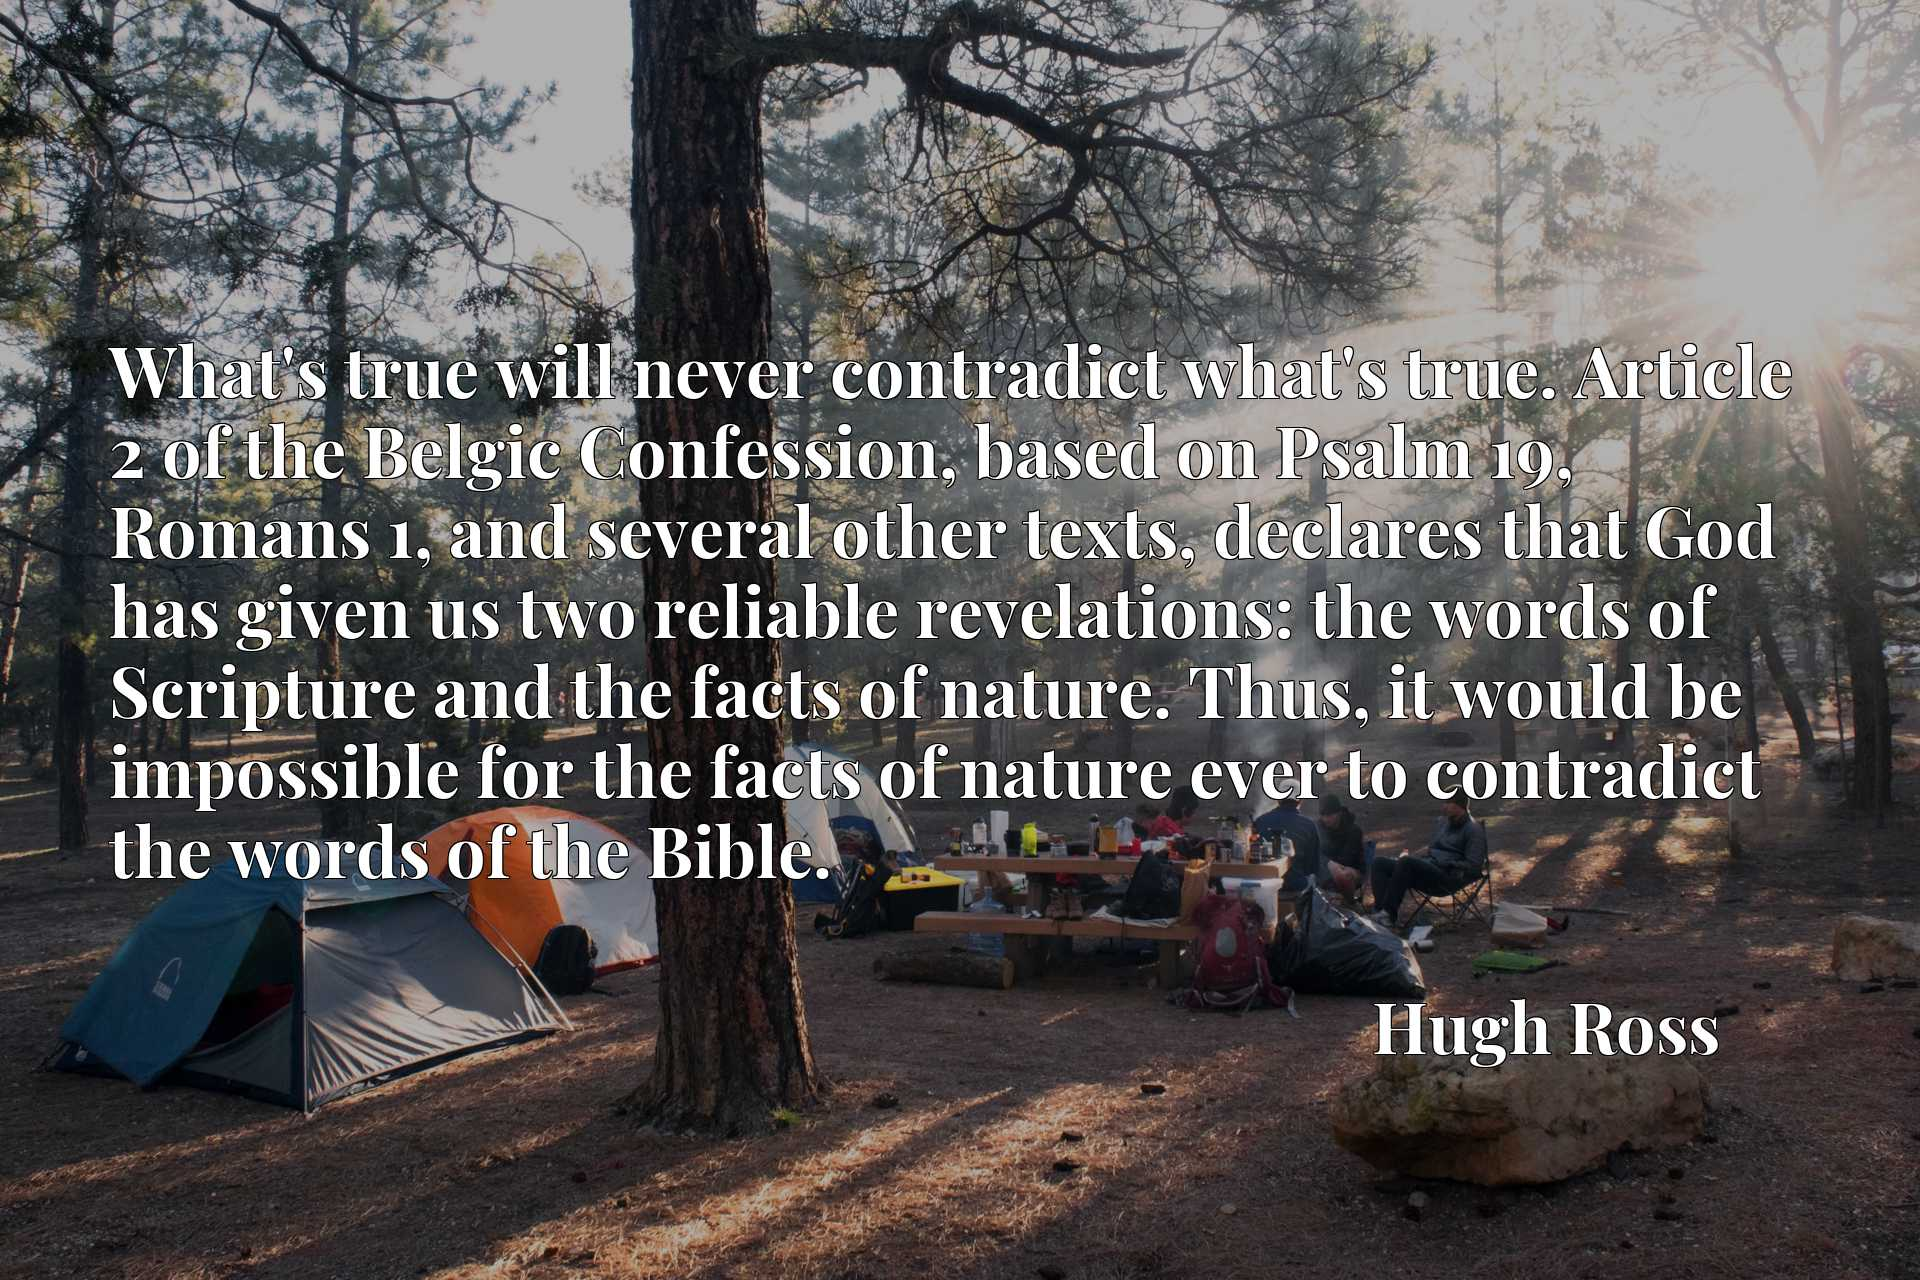 What's true will never contradict what's true. Article 2 of the Belgic Confession, based on Psalm 19, Romans 1, and several other texts, declares that God has given us two reliable revelations: the words of Scripture and the facts of nature. Thus, it would be impossible for the facts of nature ever to contradict the words of the Bible.